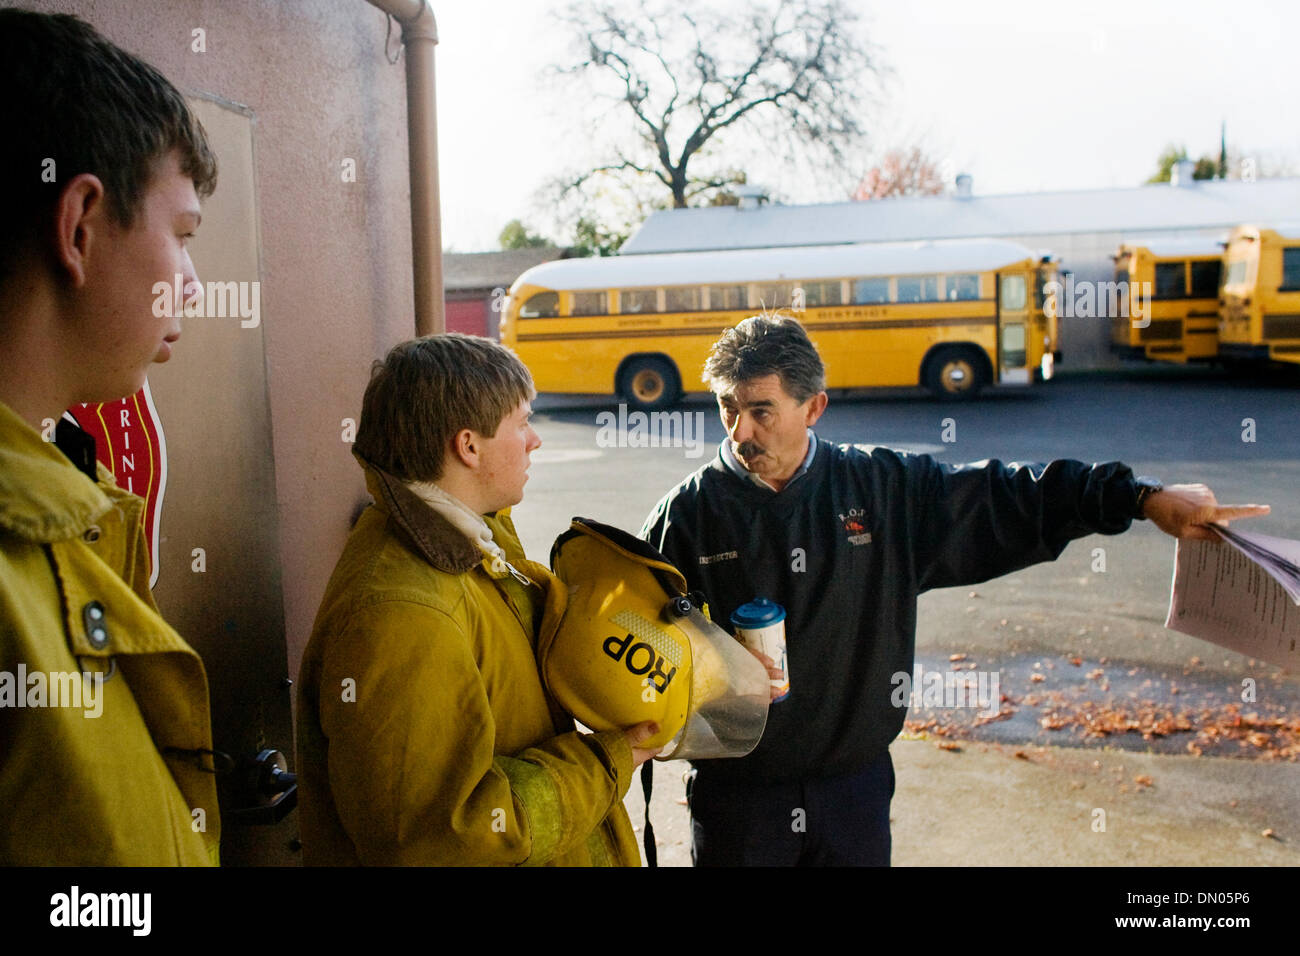 Dec. 04, 2009 - Redding, California, USA - Fire Chief Gary Lyon briefs students Lance Bechtoldt, 17, of West Valley High School, left, and William Bisso, 17, of Anderson High School, Friday during their firefighter training class at Redding Fire Department station No. 5. The training is part of the Shasta-Trinity Regional Occupational Program. The students will graduate and get the - Stock Image